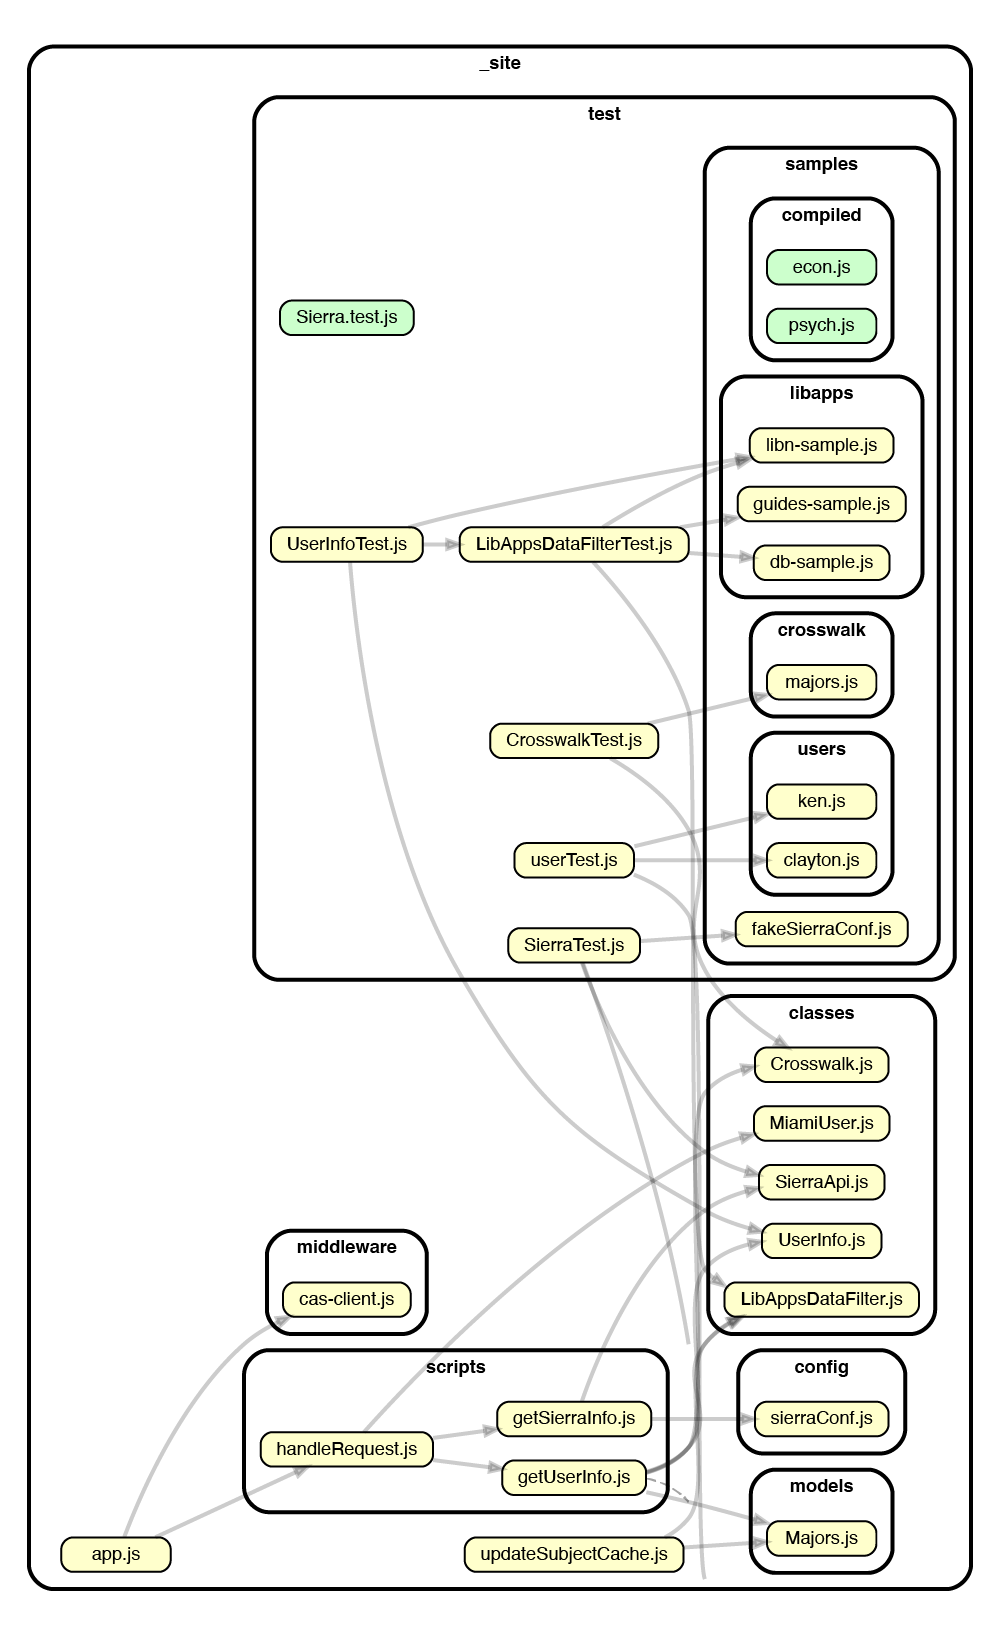 A code map, showing how the different parts of a coding project relate to each other